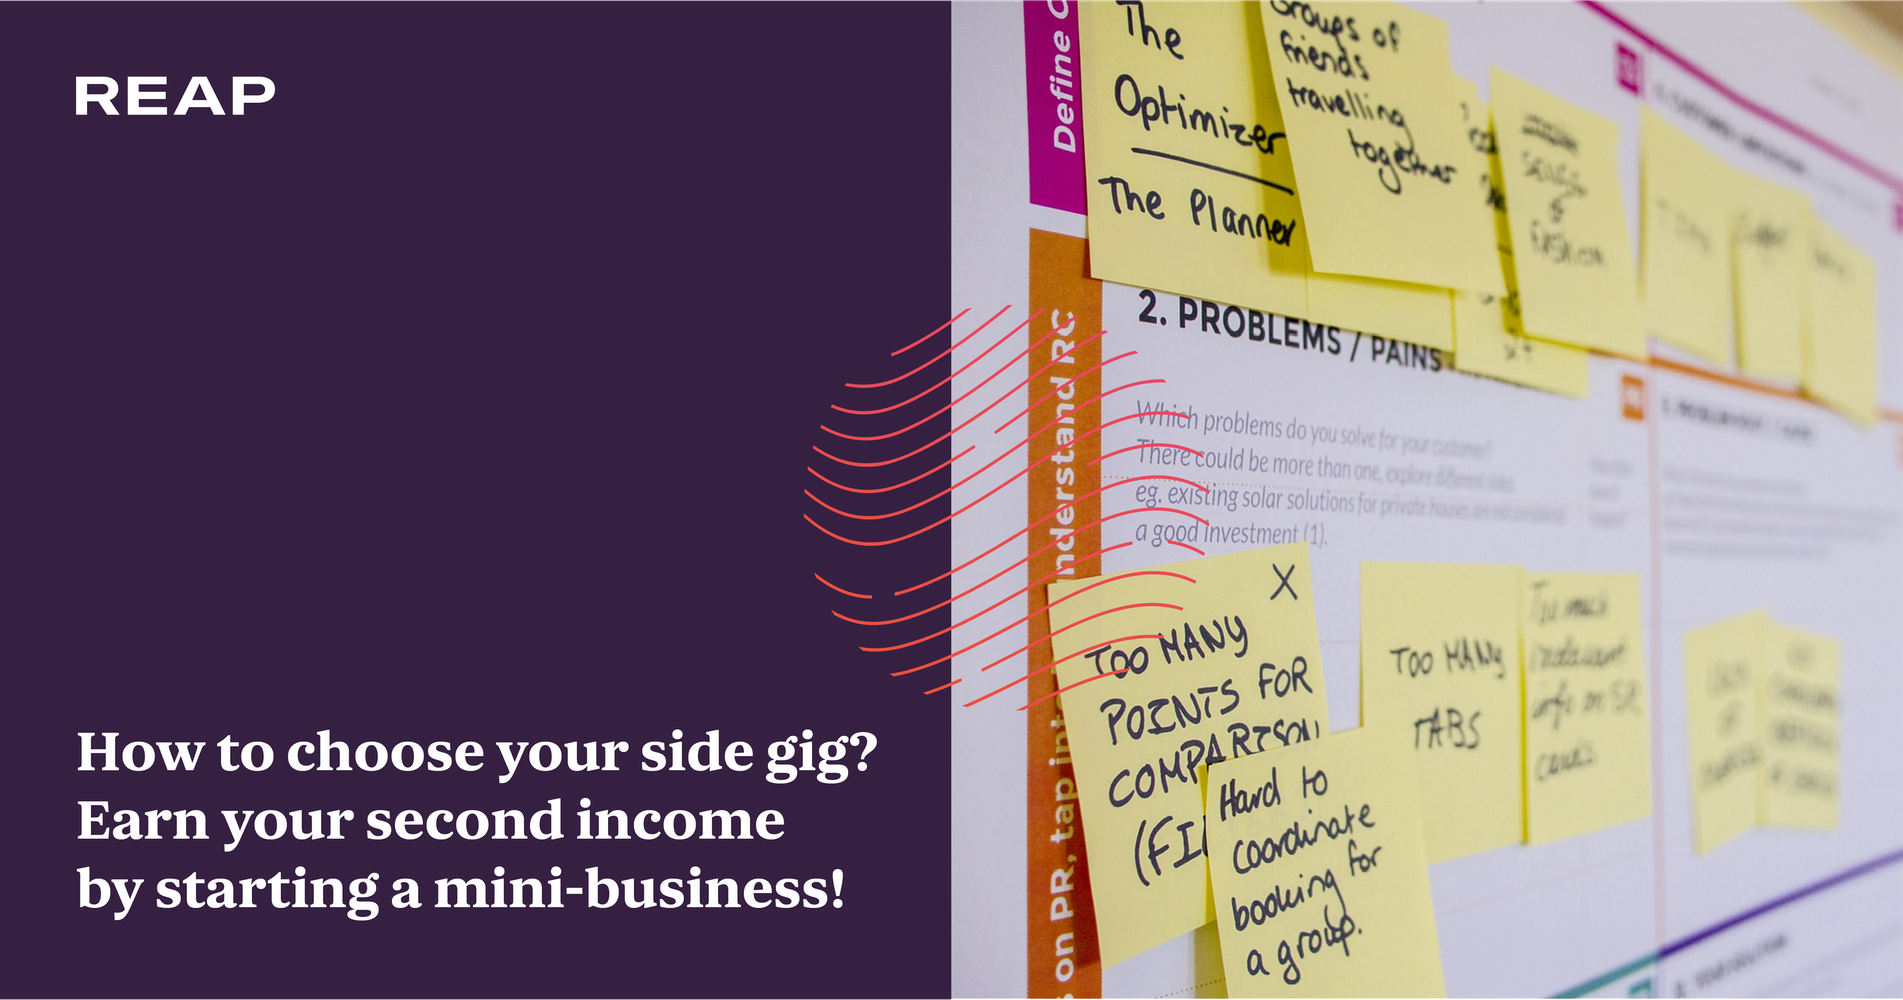 Cover Image for How to choose your side gig? Earn your second income by starting a mini-business!